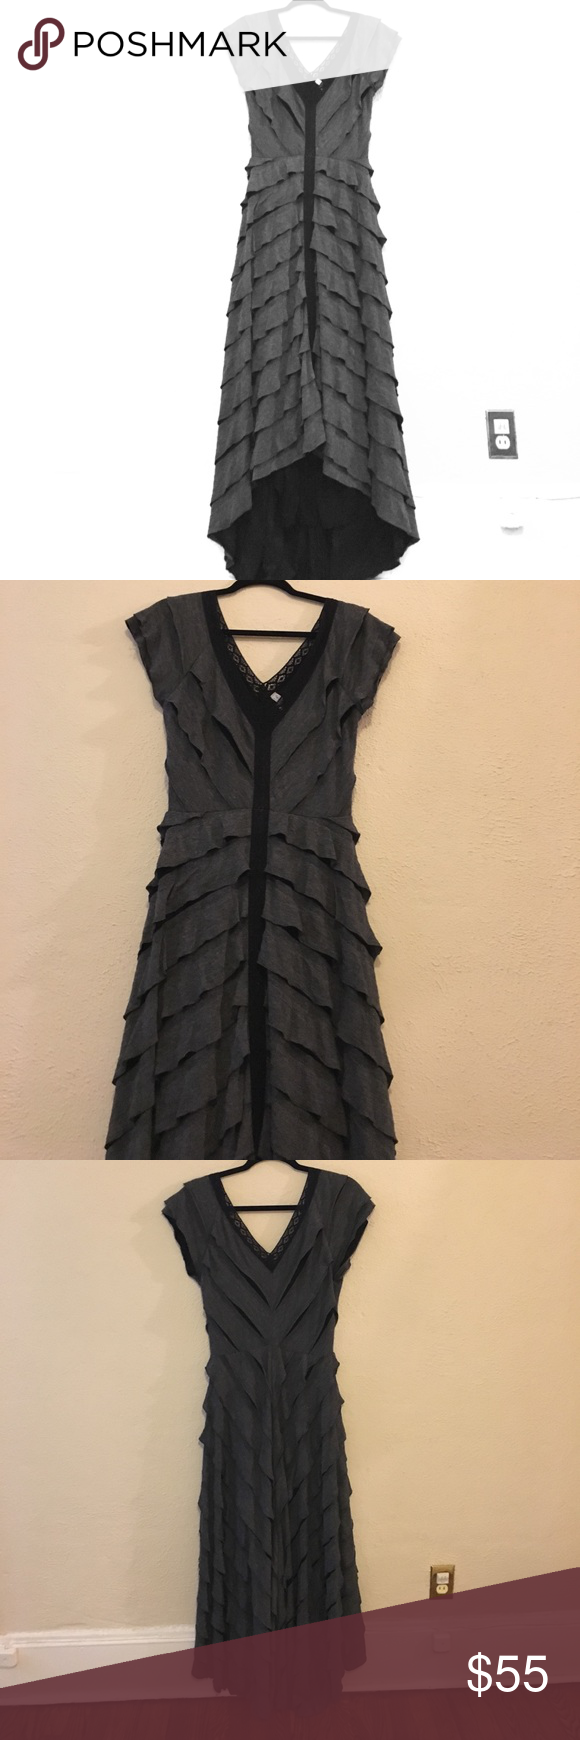 Beautiful grilled dress Long dress with frills and lace. Super flattering, small train in the back. Worn once Free People Dresses Maxi